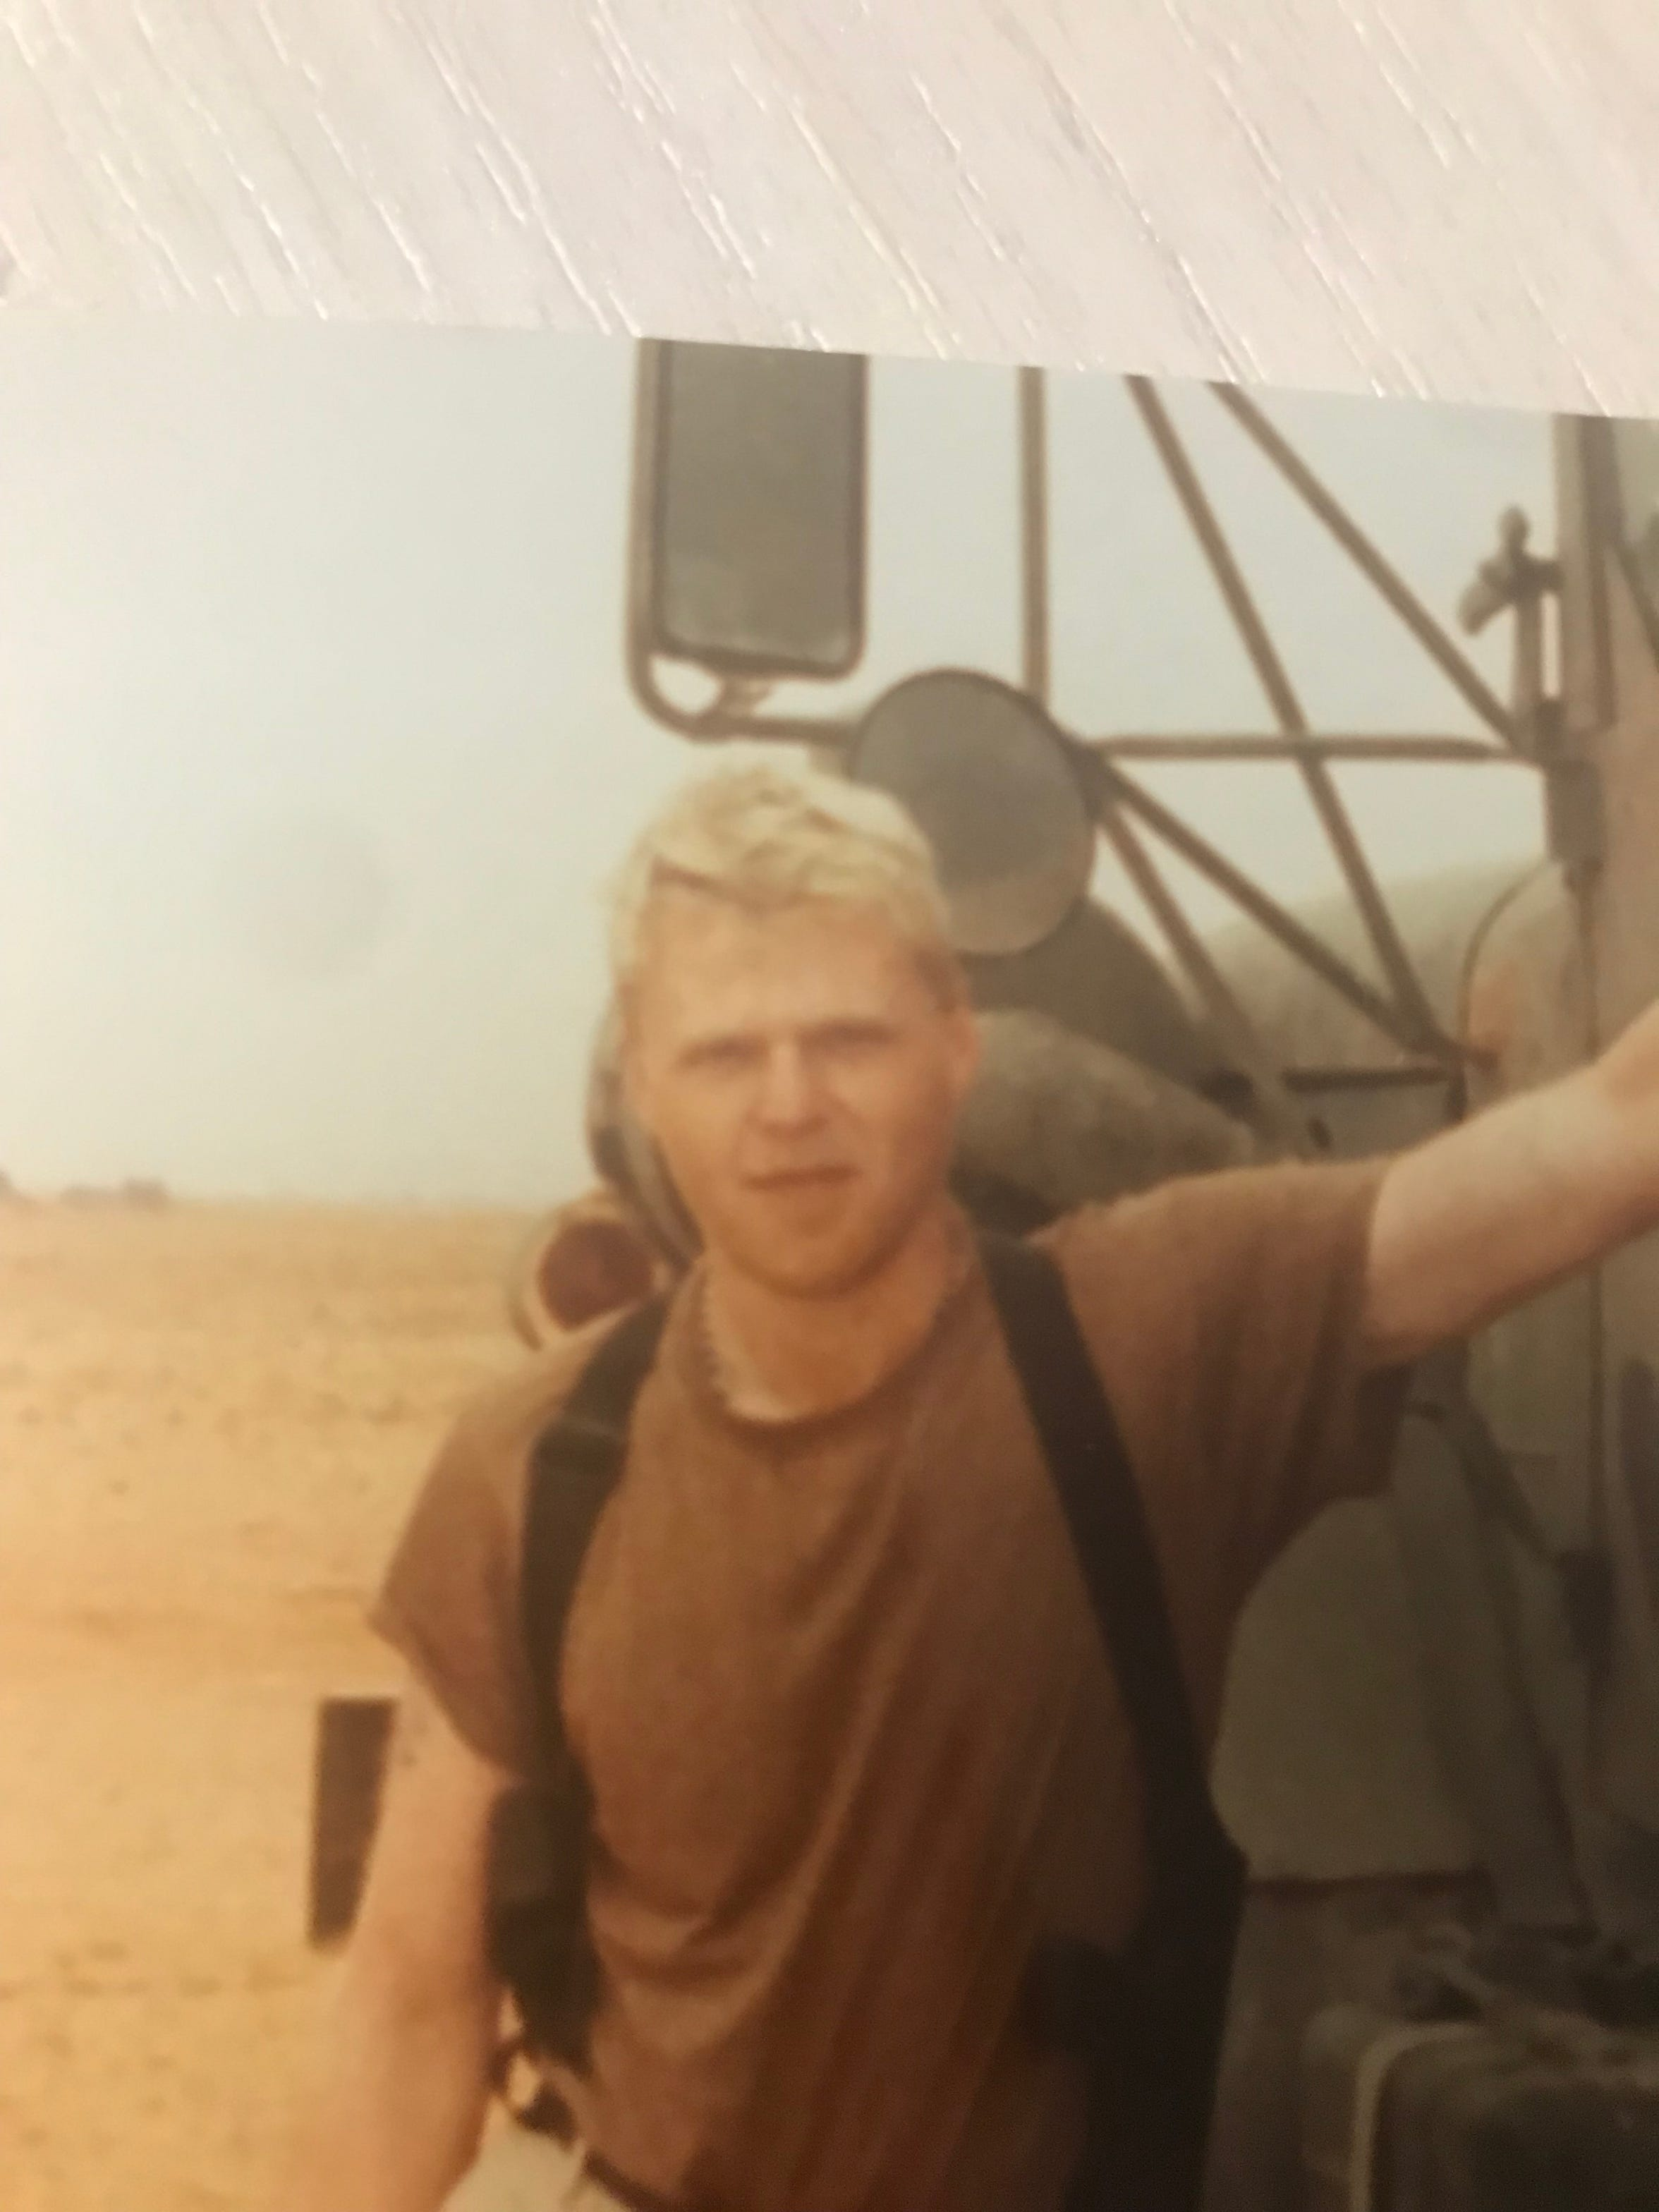 Dennis Shaner was an Army veteran who served in Iraq during Operation Desert Storm, according to his ex-wife Christine Camasso.